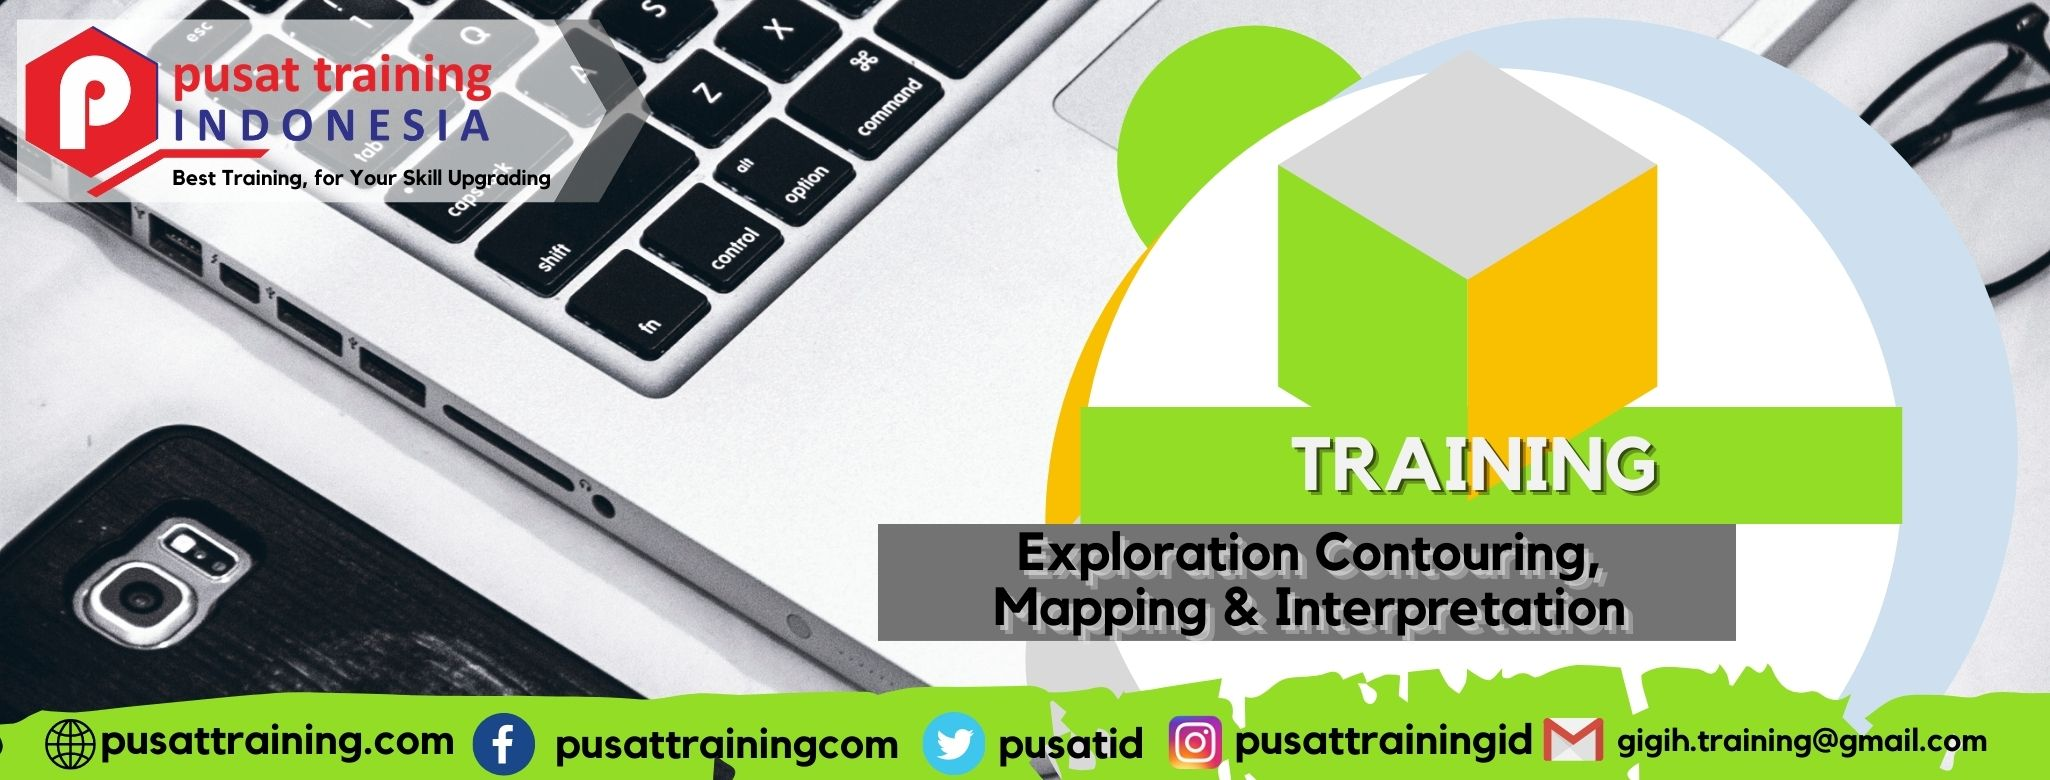 Training Exploration Contouring, Mapping & Interpretation